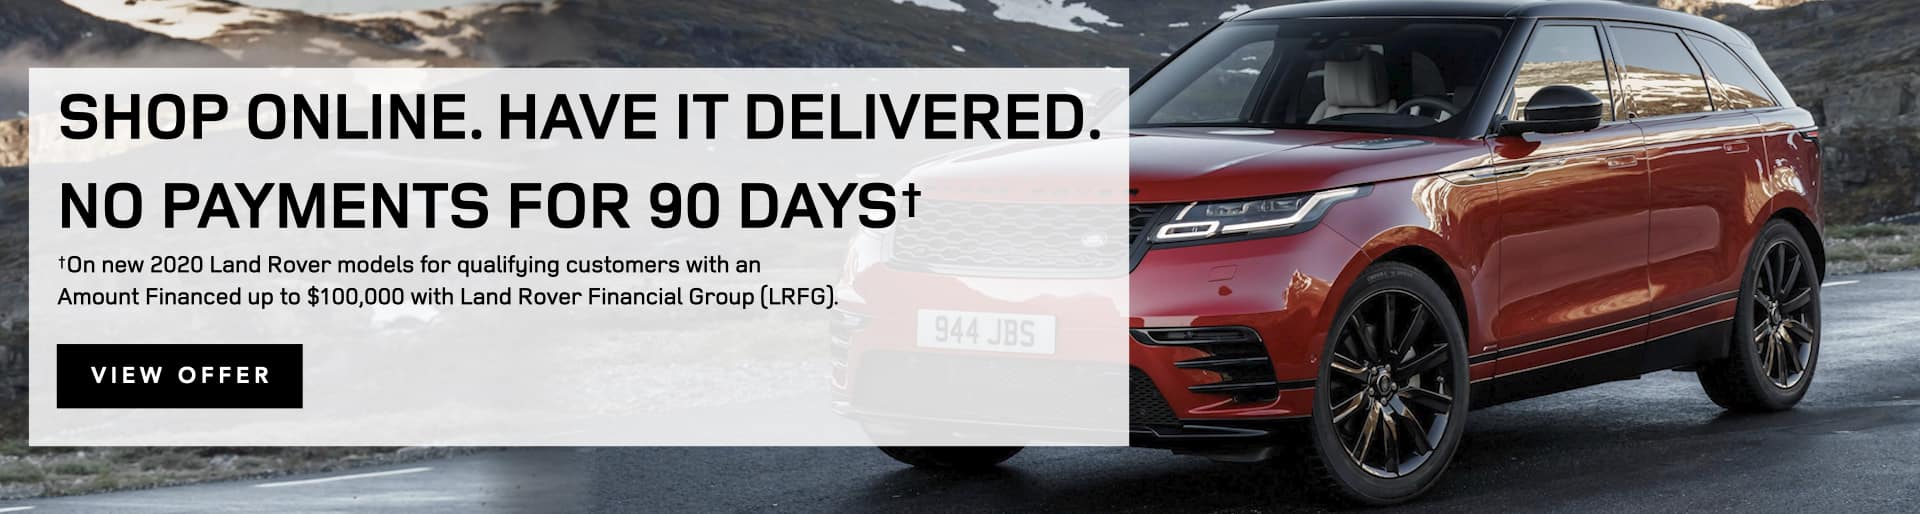 Shop online, have your vehicle and paperwork delivered to you, and defer payment for up to 90 days. Select this link to view details of the 90-day-deferral program through Land Rover Financial Group.